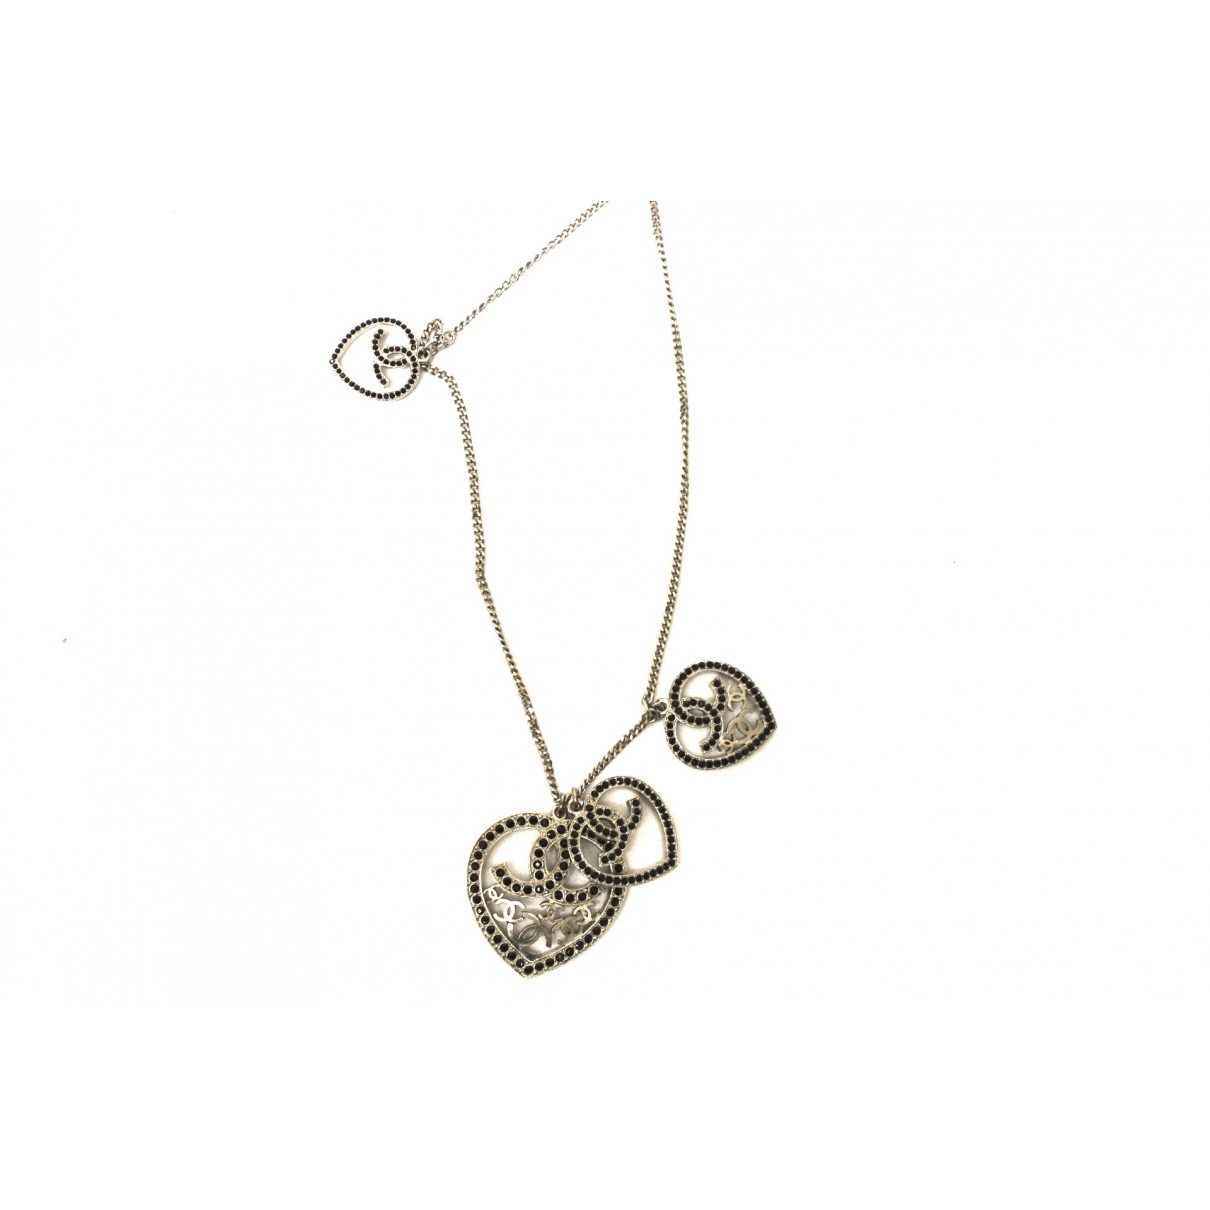 Chanel \N Silver necklace for Women \N